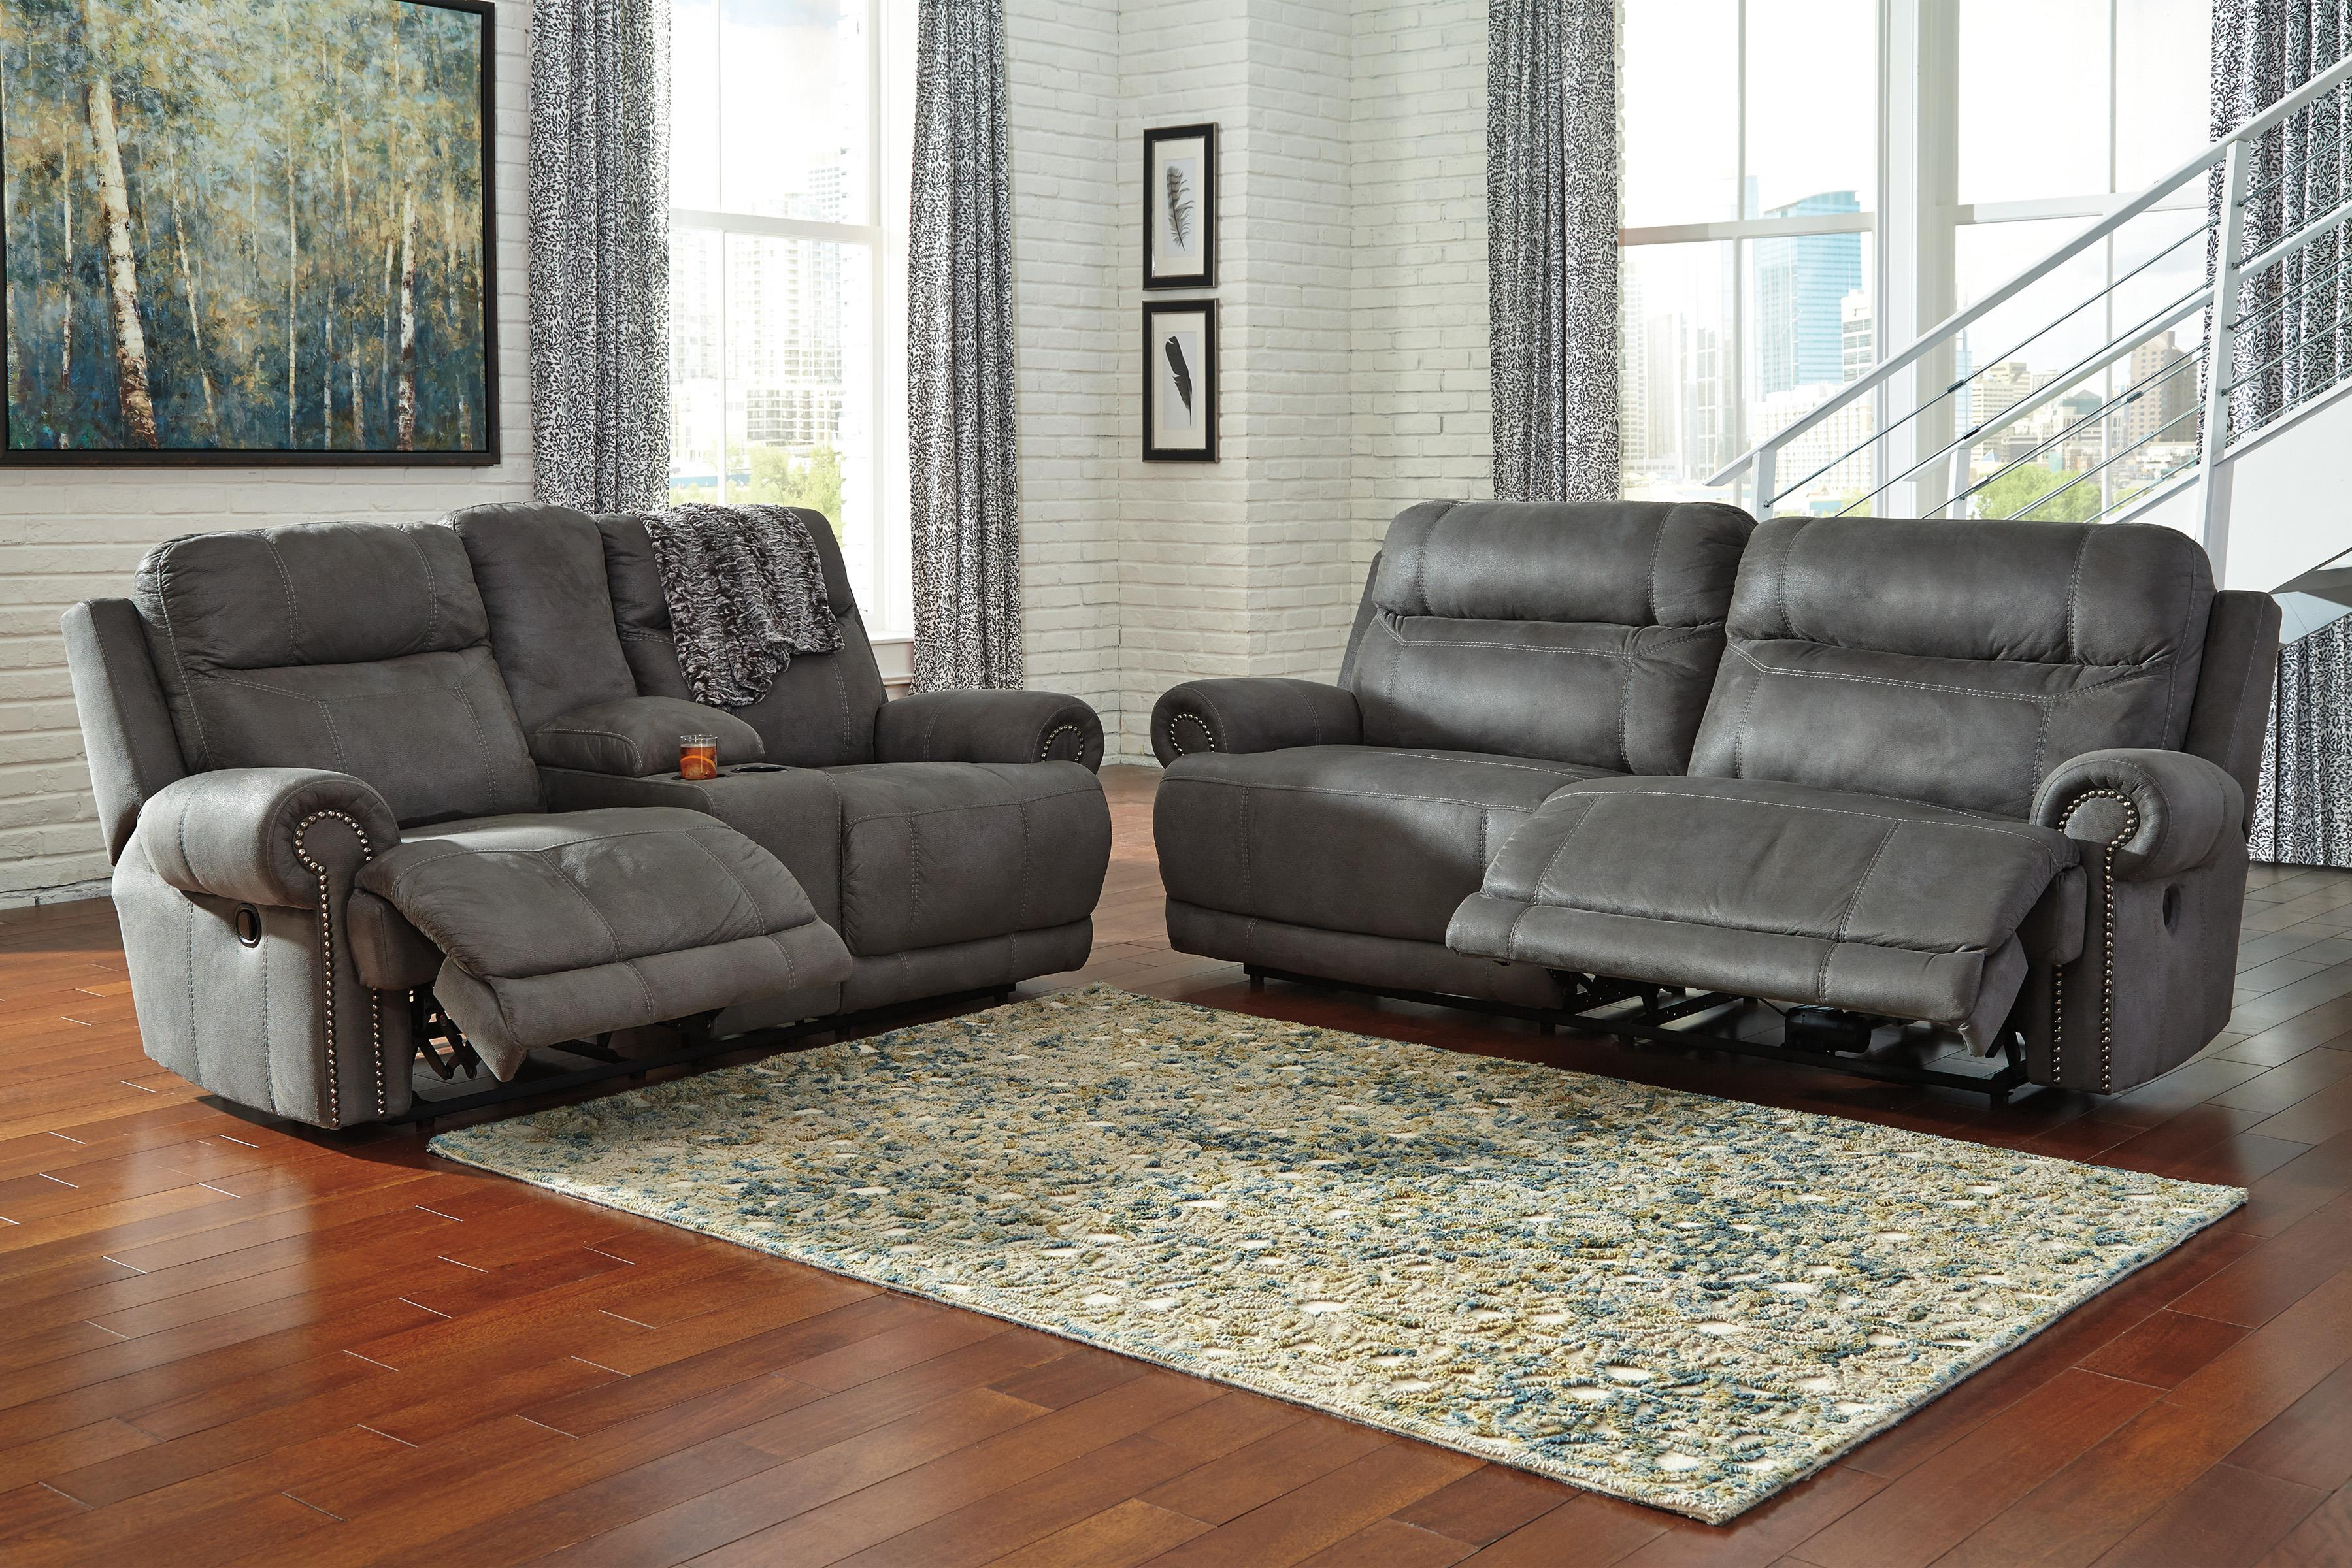 Signature Design by Ashley Austere - Gray Reclining Living Room Group - Item Number: 38401 Living Room Group 1